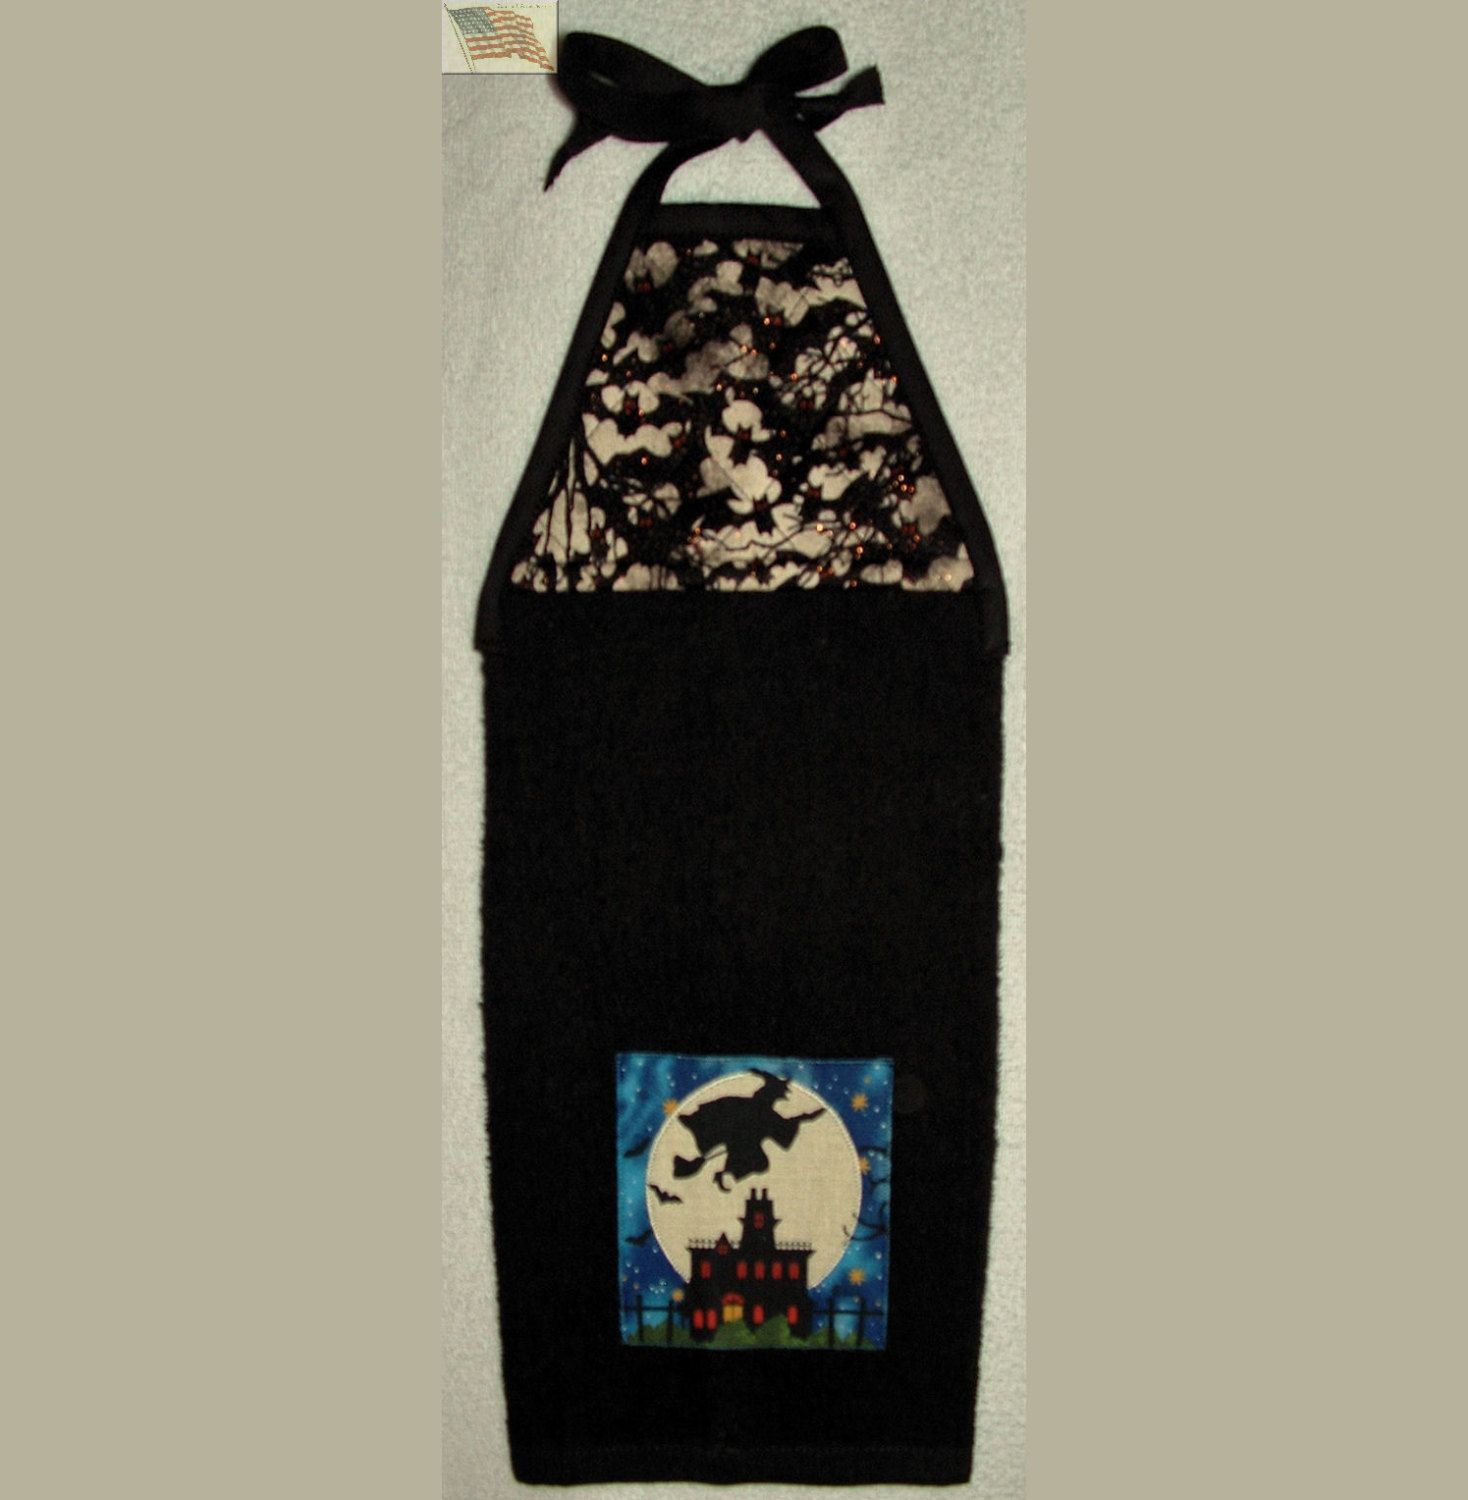 Kitchen Towel   Quilted Top With Ties   Witch/Broom  Appliqued By  CUTESTUFF1 On